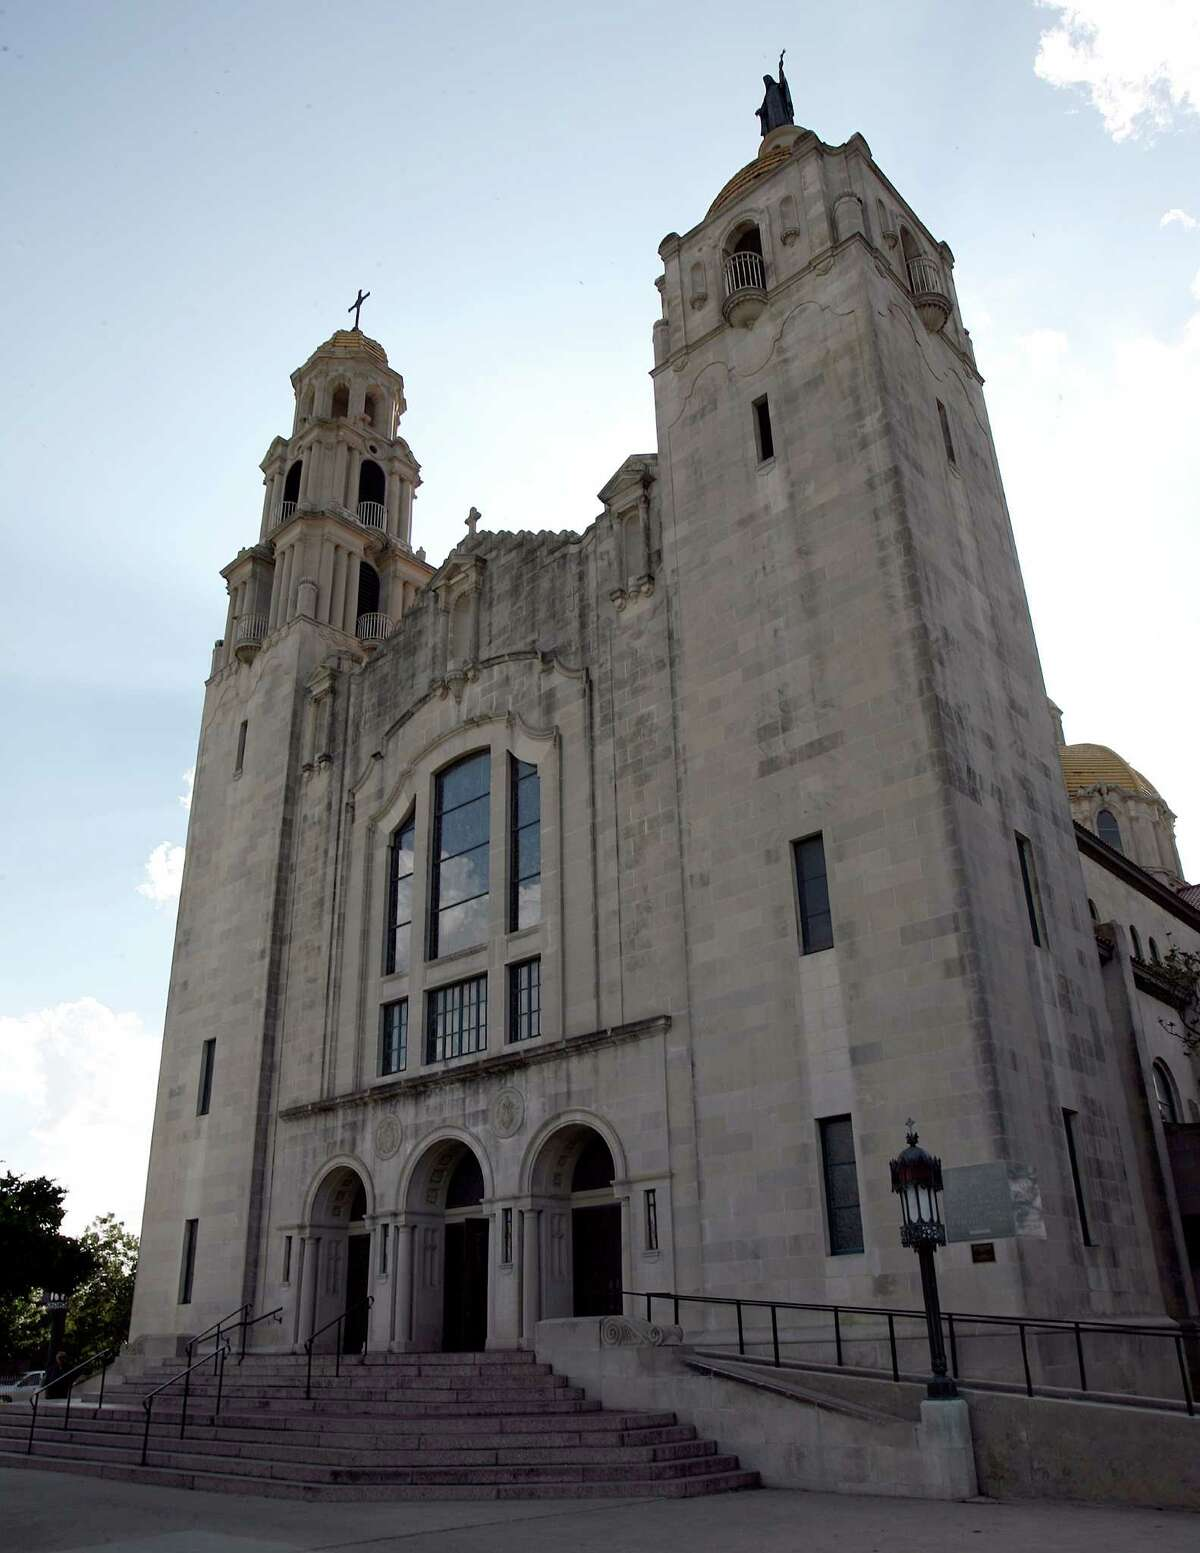 The Basilica of the National Shrine of the Little Flower.